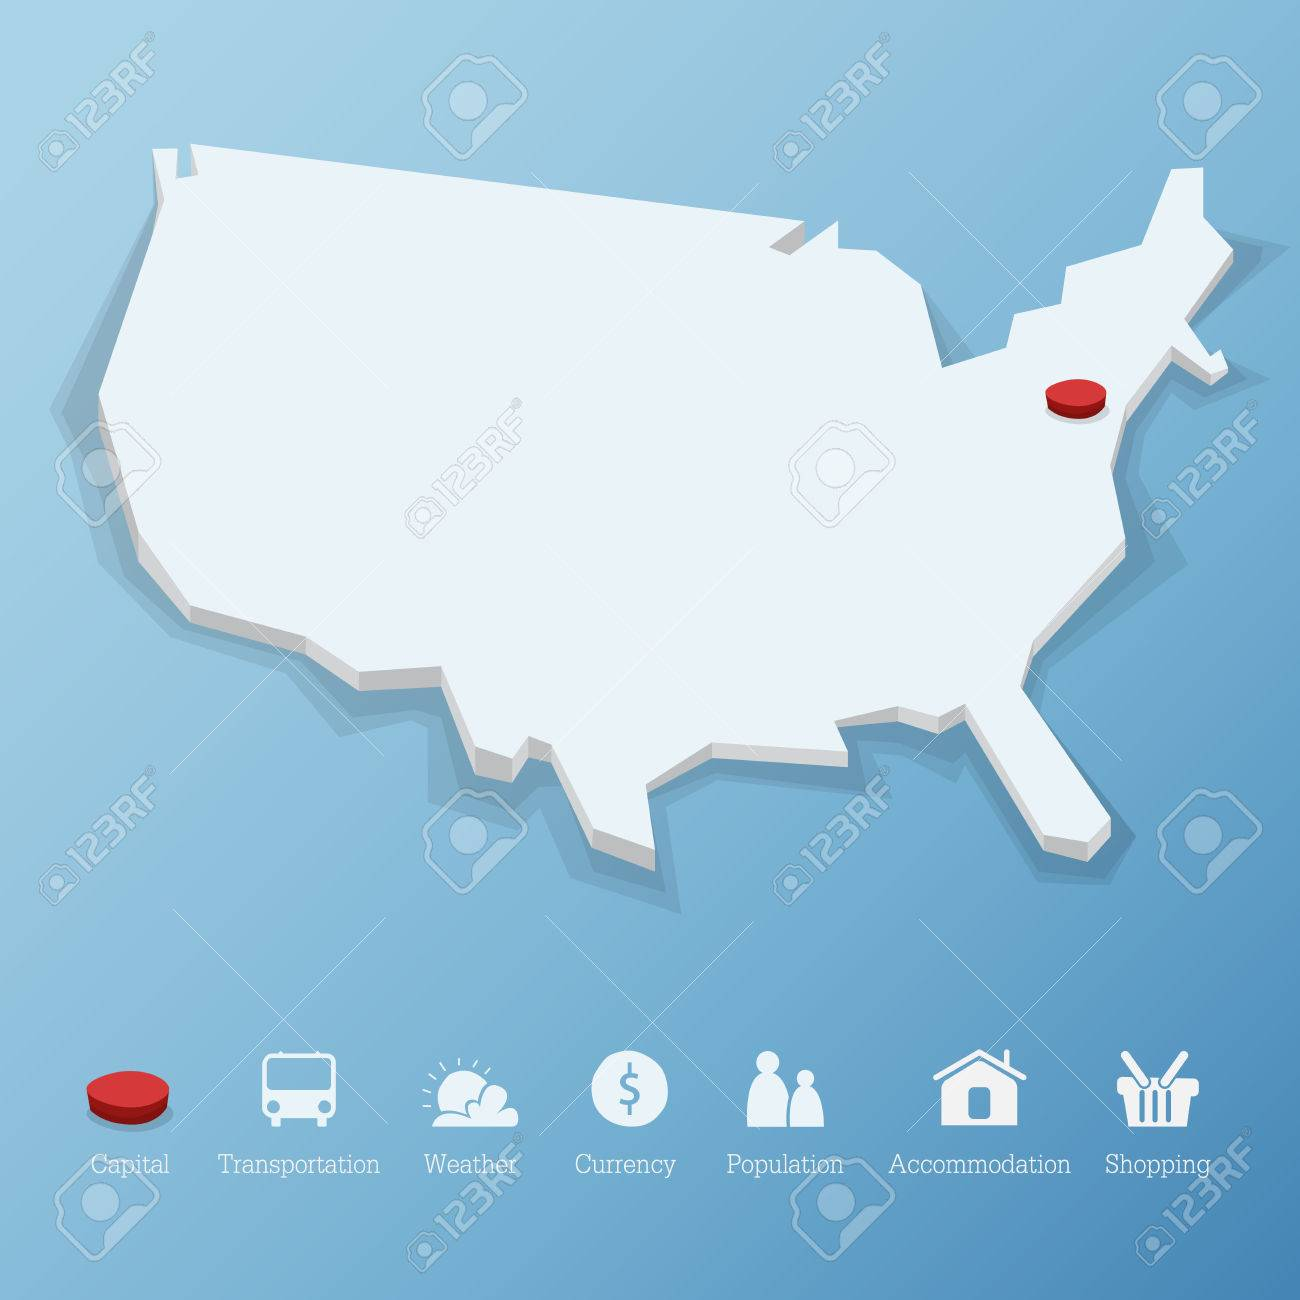 Flat Us Map.United States Of America Map In Low Poly Design Including Tourism